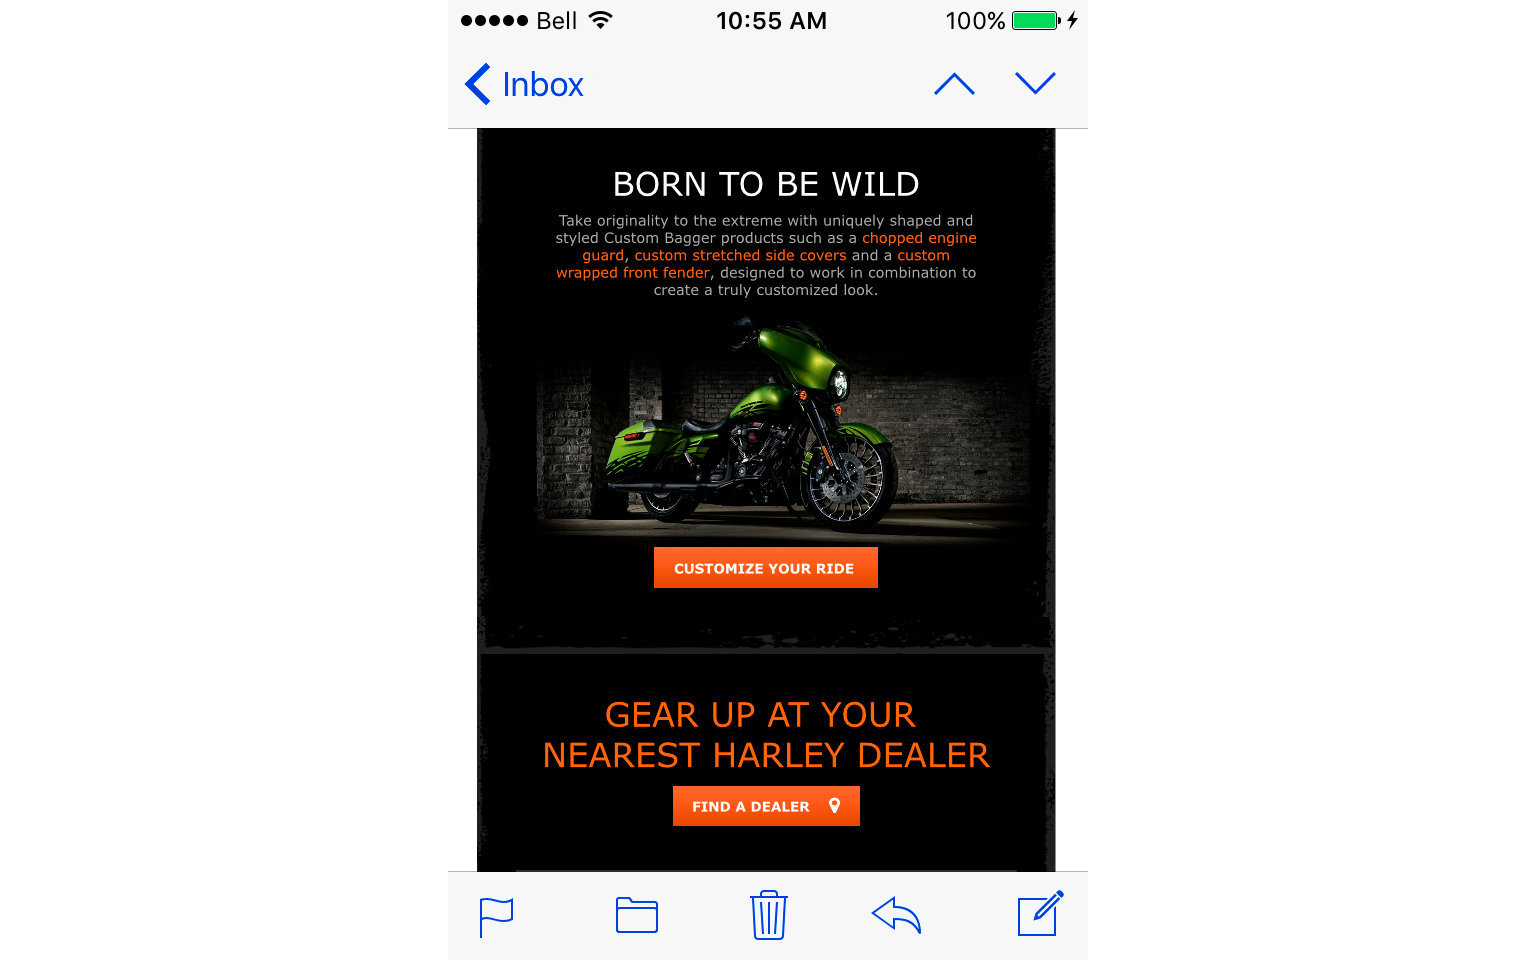 HARLEY-DAVIDSON ACCESSORIES EMAIL  10/10